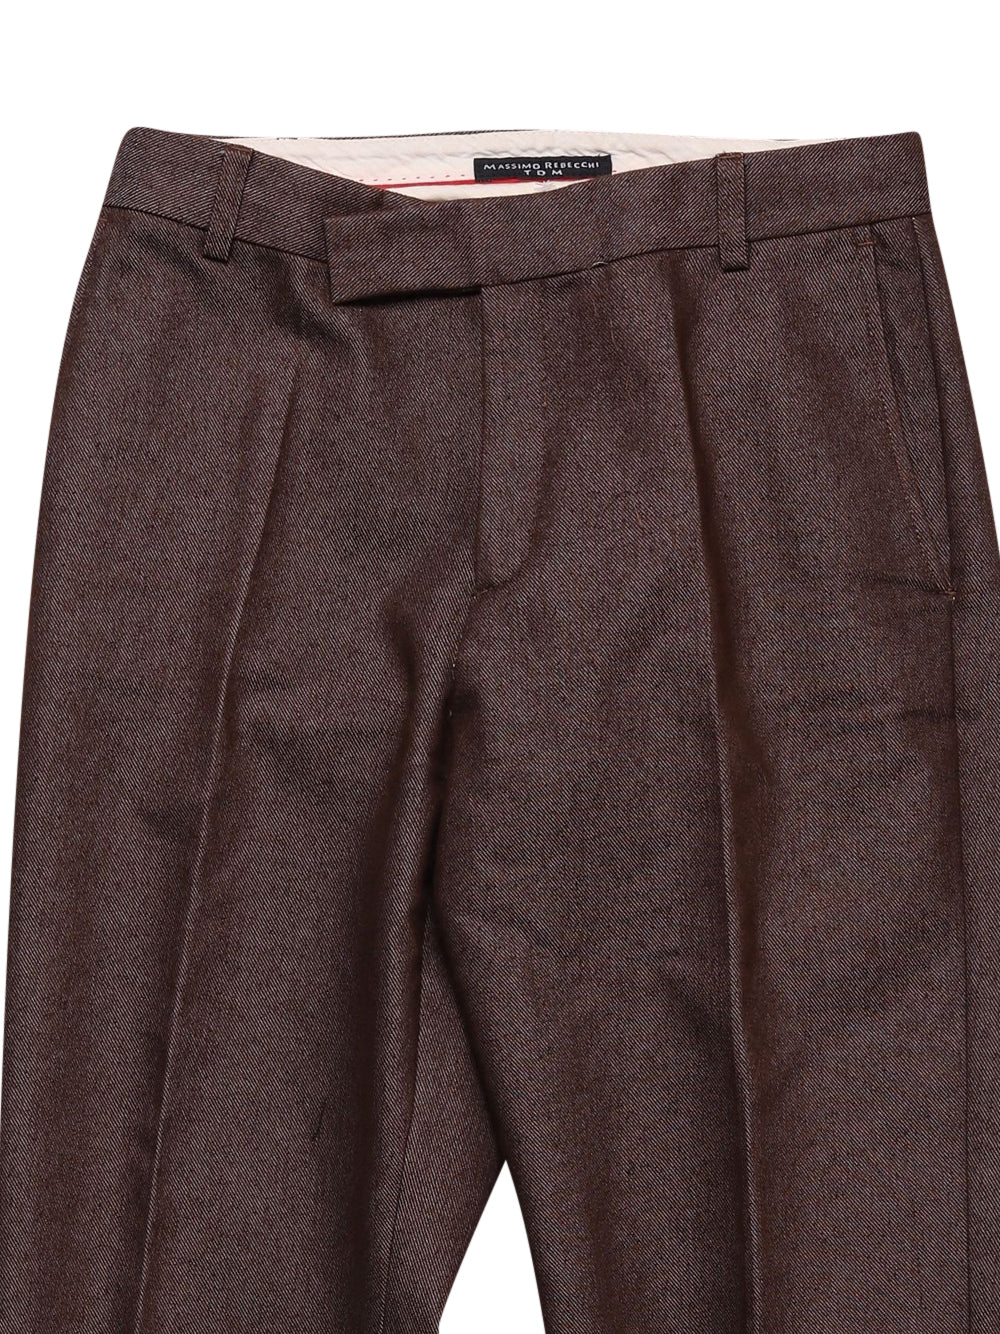 Detail photo of Preloved Massimo Rebecchi Brown Woman's trousers - size 8/S